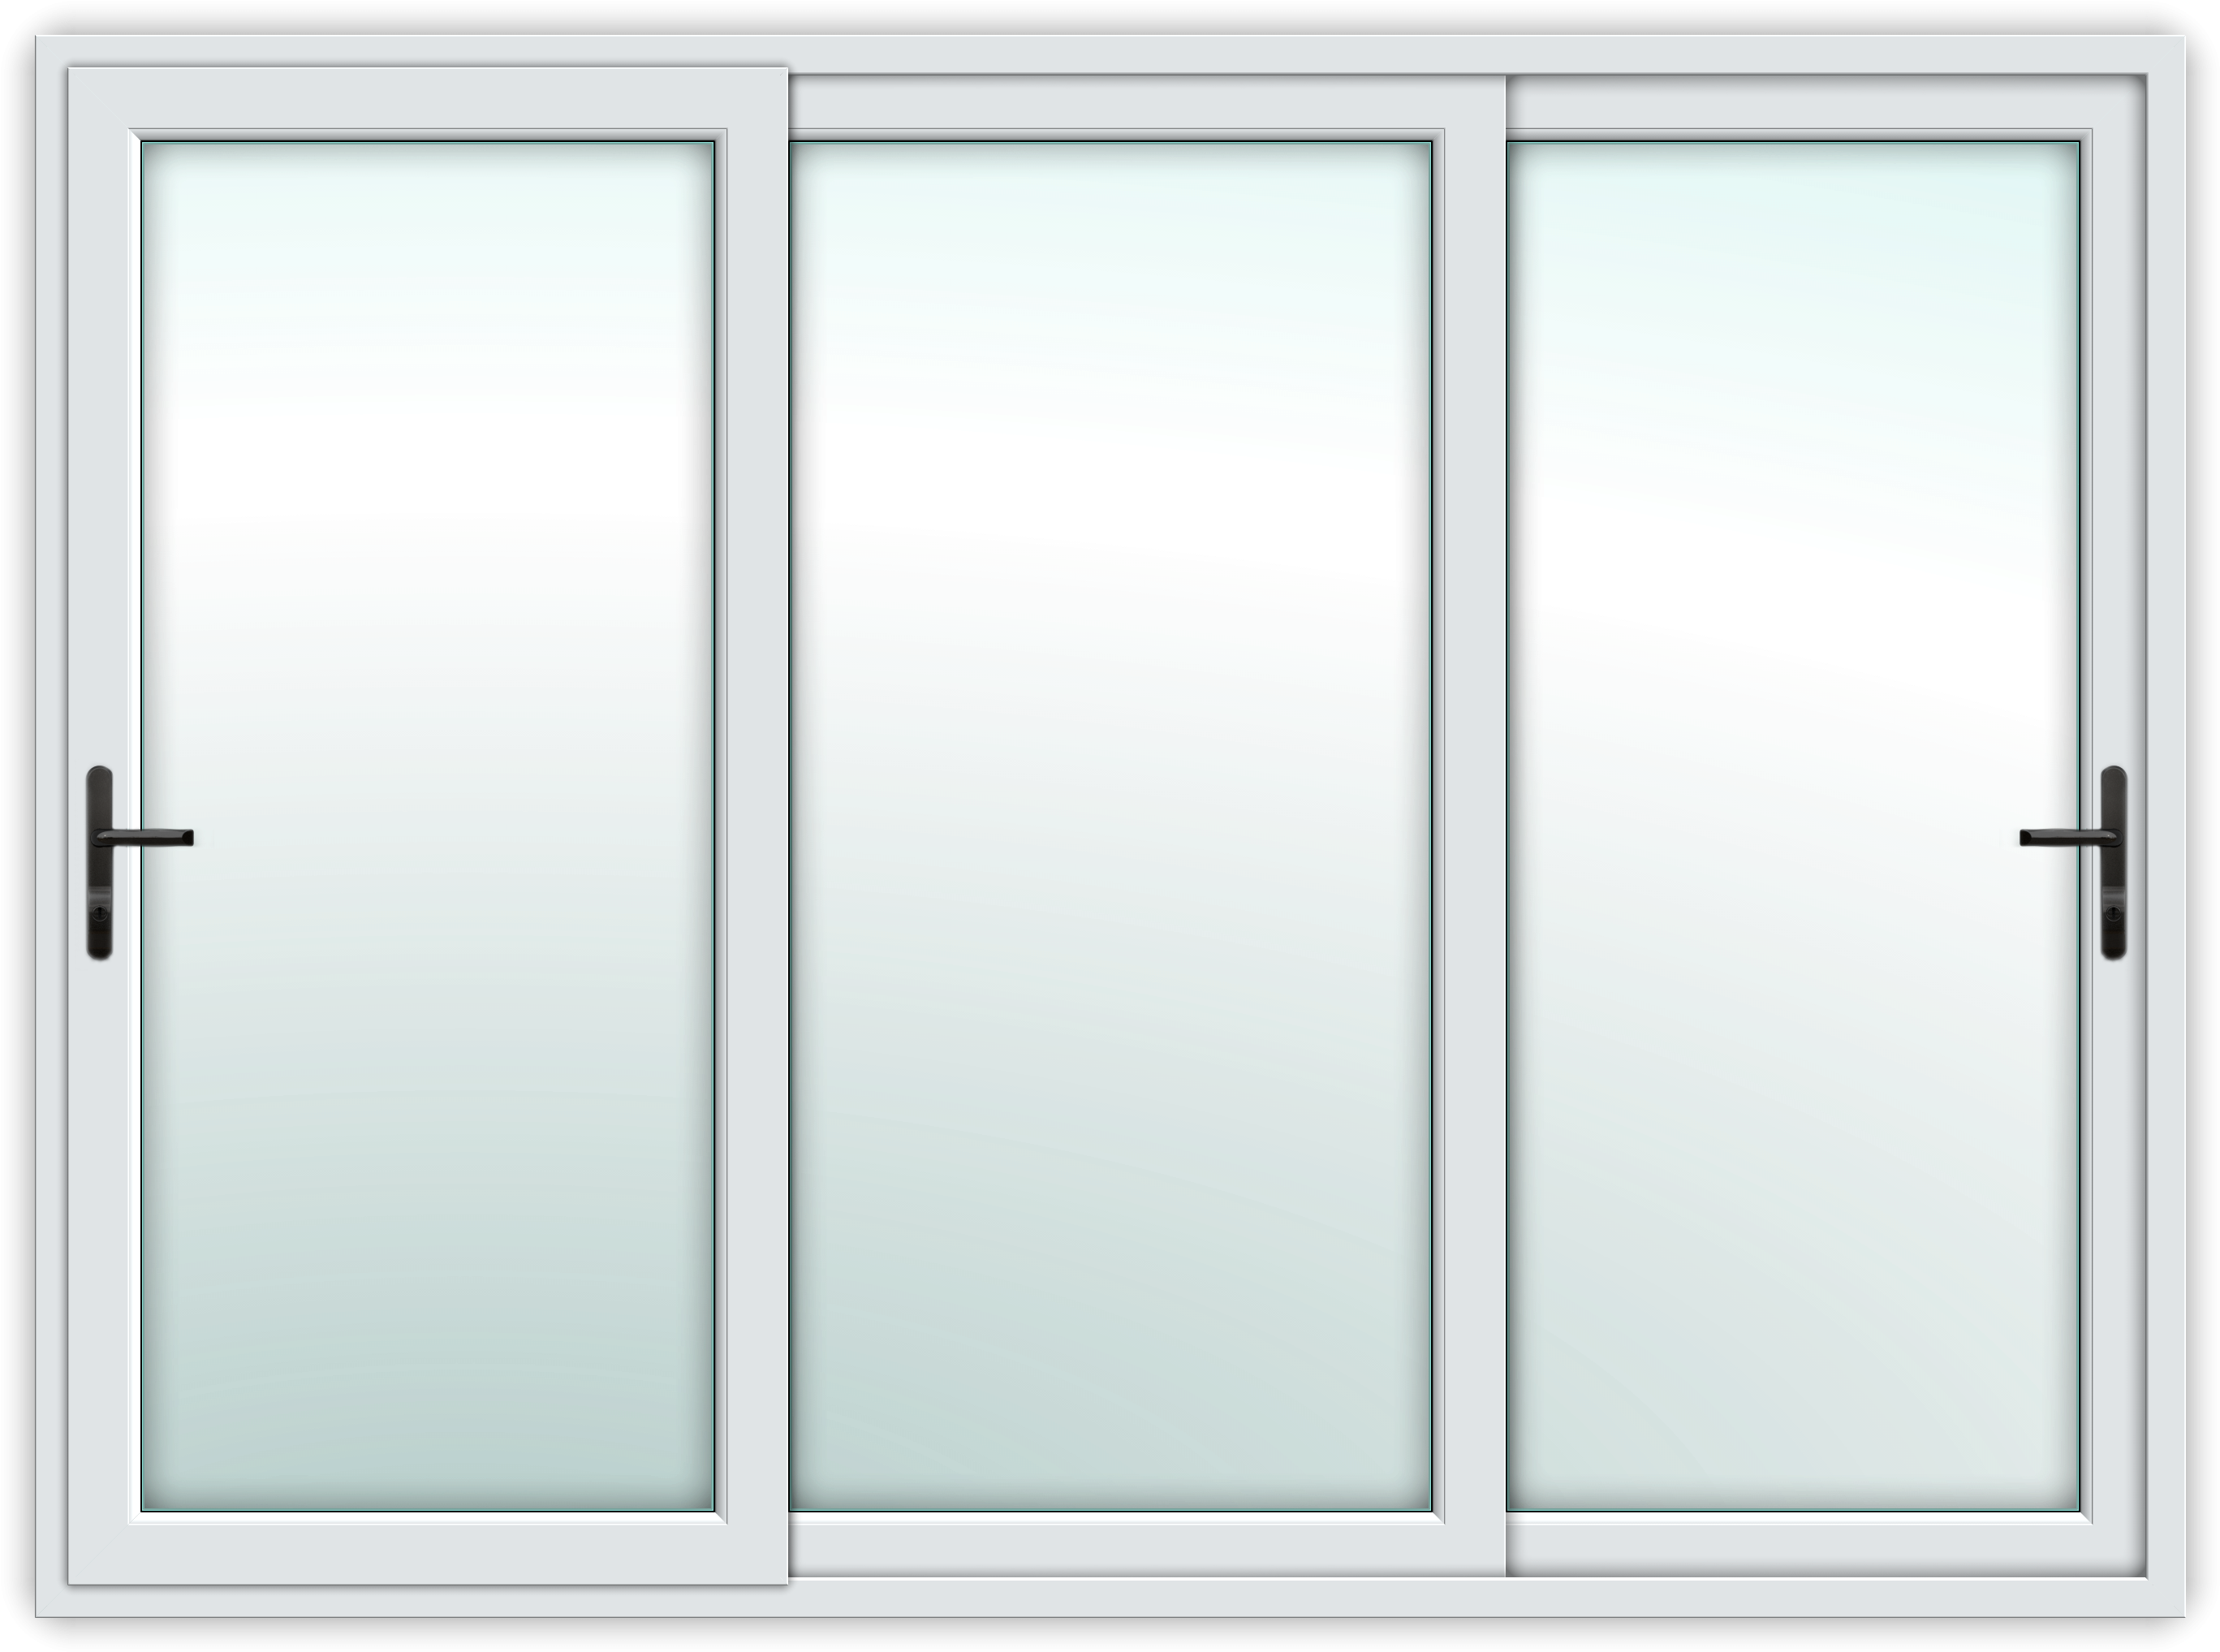 Download Sliding Glass Window Png Png Image With No Background Pngkey Com Window png you can download 36 free window png images. download sliding glass window png png